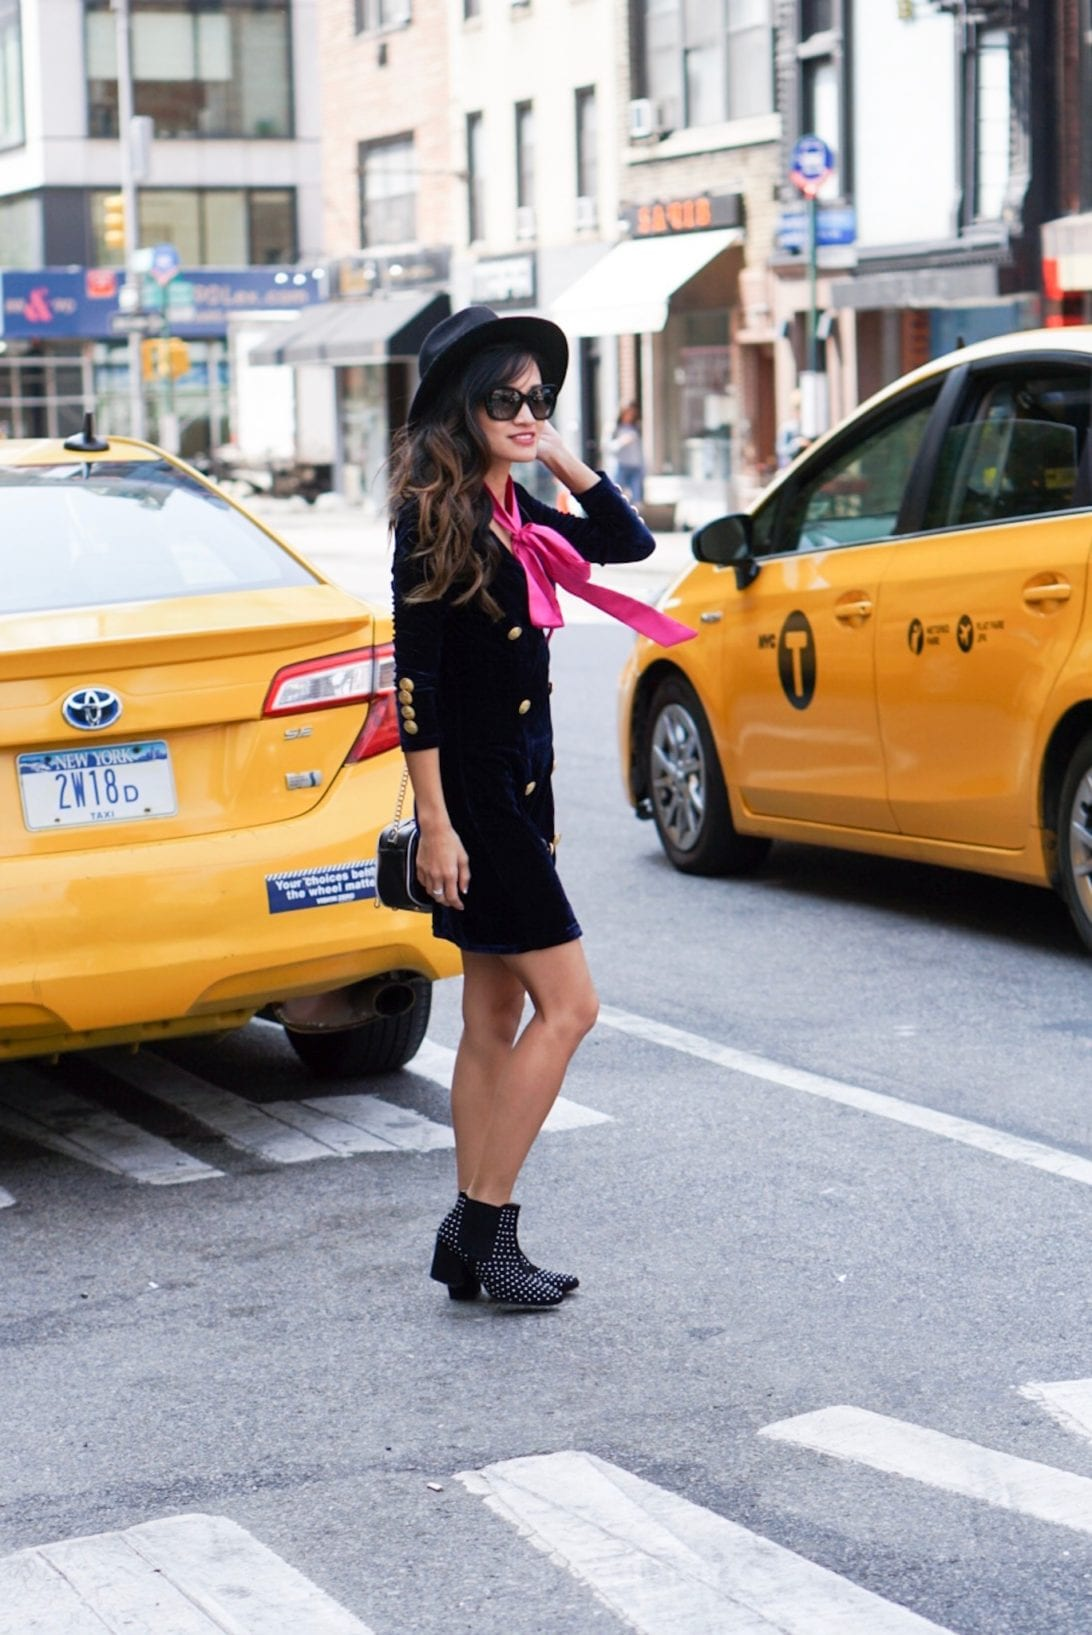 NYFW, NYFW STYLE, New York FASHION WEEK, NYC STREET STYLE, NYC CAB SHOT, PINK BOW TIE, STUDDED BOOTS, BLACK FEDORA, MILITARY DRESS, CAMERA BAG, VELVET DRESS, VERSACE SUNGLASSES